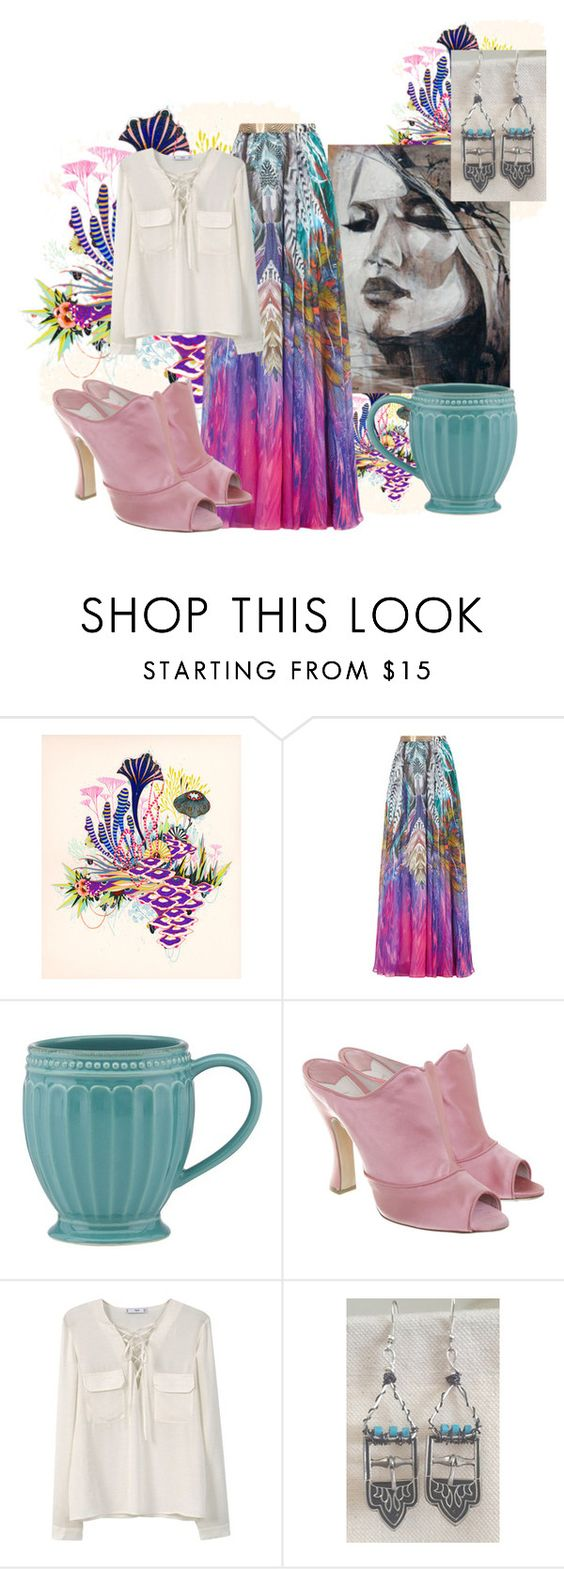 """""""Bohemian Chic & Aclaire Designs' Earrings"""" by aclaire ❤ liked on Polyvore featuring Lenox, Miu Miu, MANGO and aclaire"""